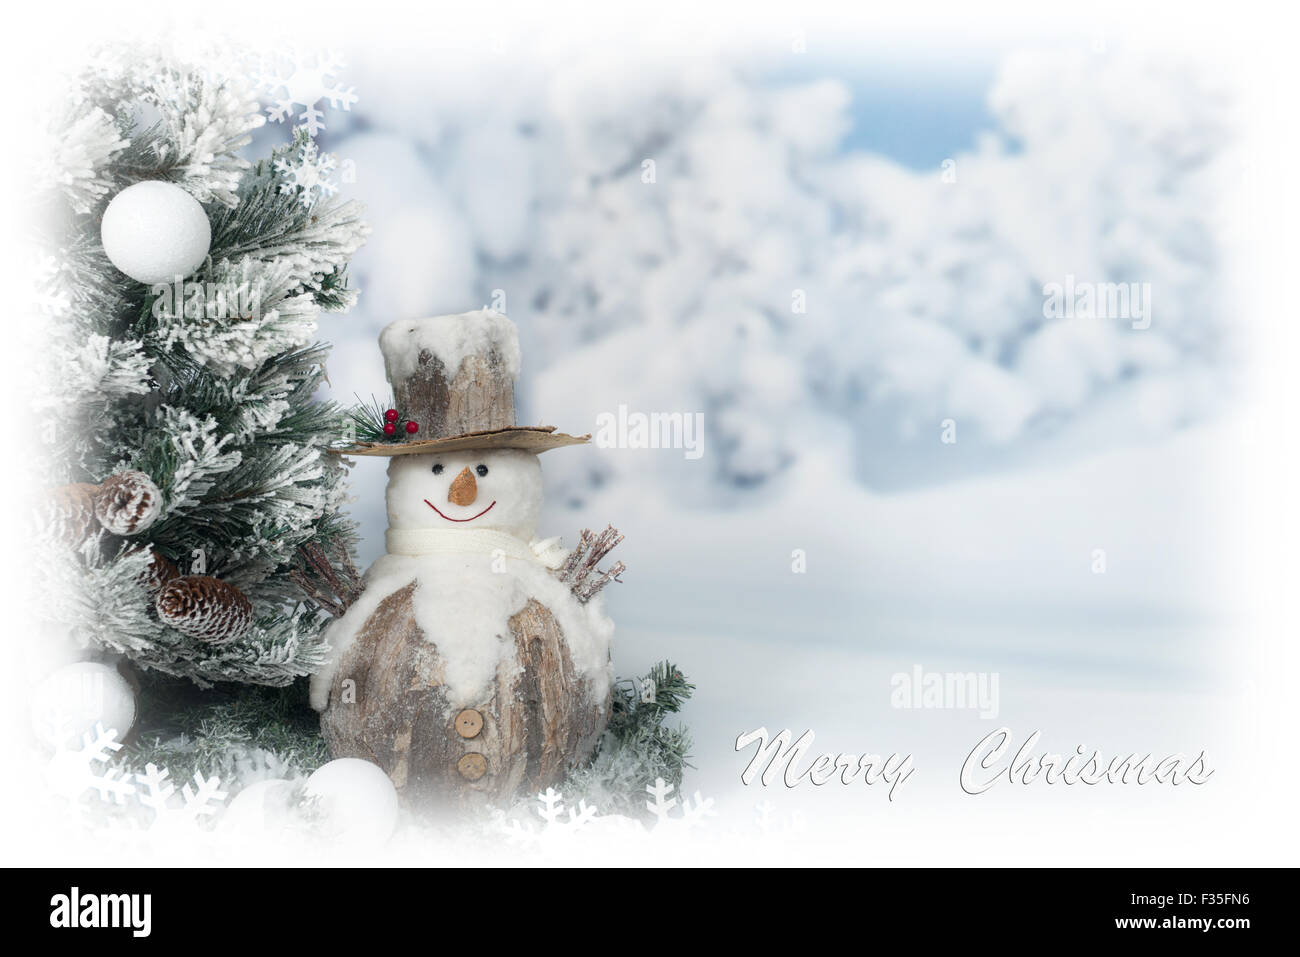 Merry Christmas greeting card with snowman next to tree - Stock Image